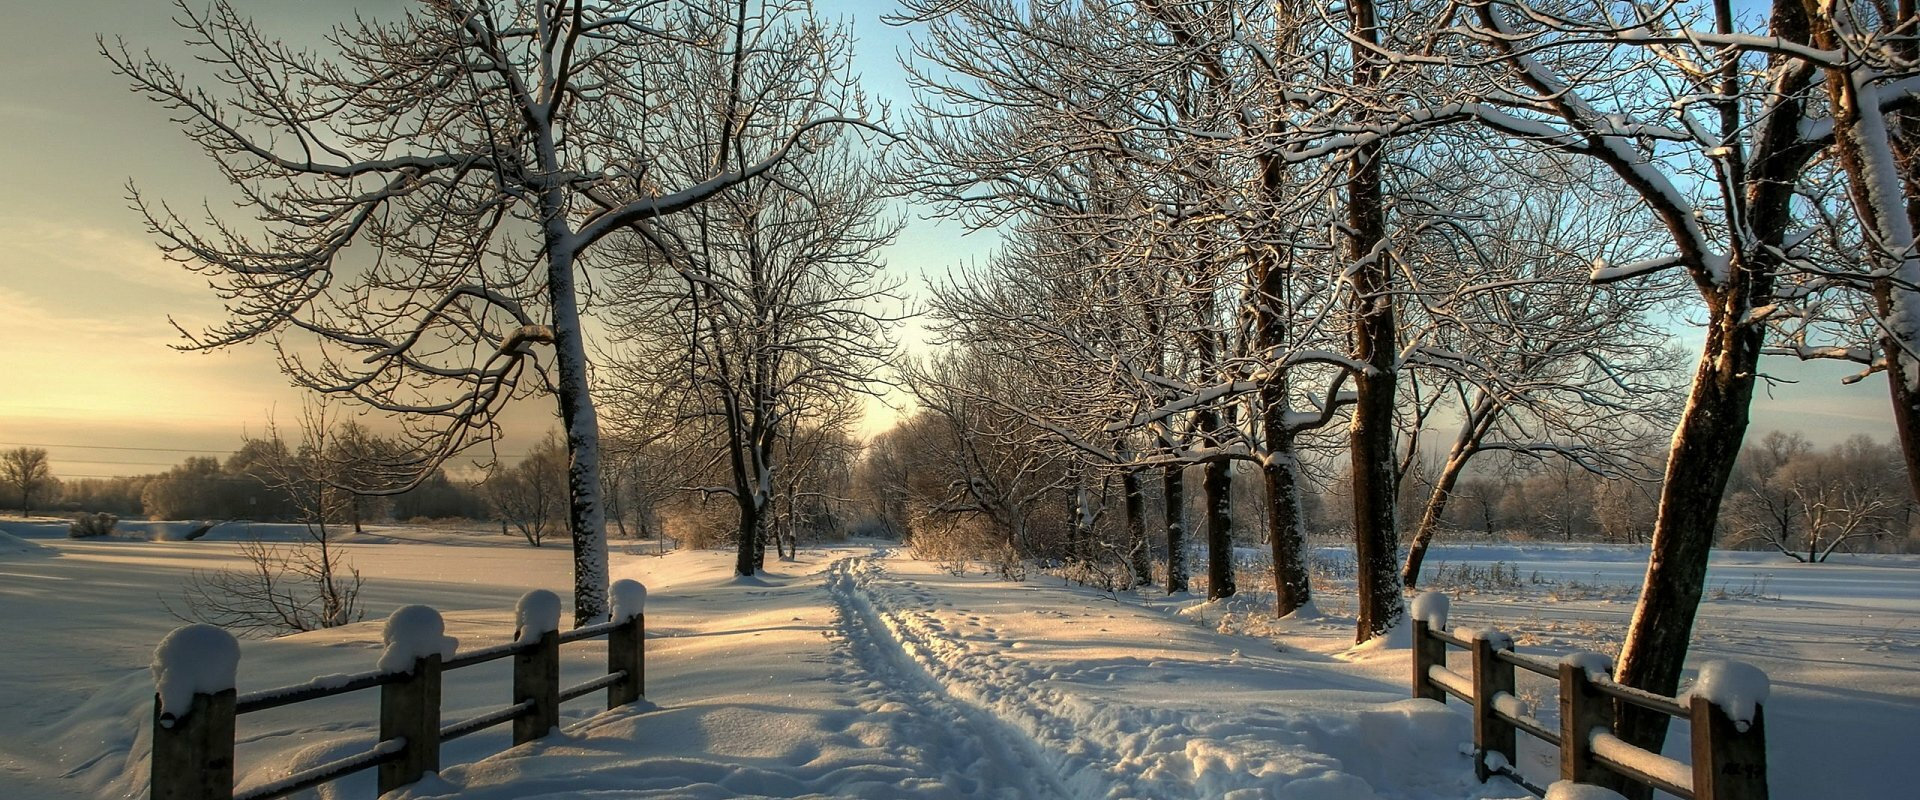 snow-covered-country-road-wallpaper-7137-7419-hd-wallpapers